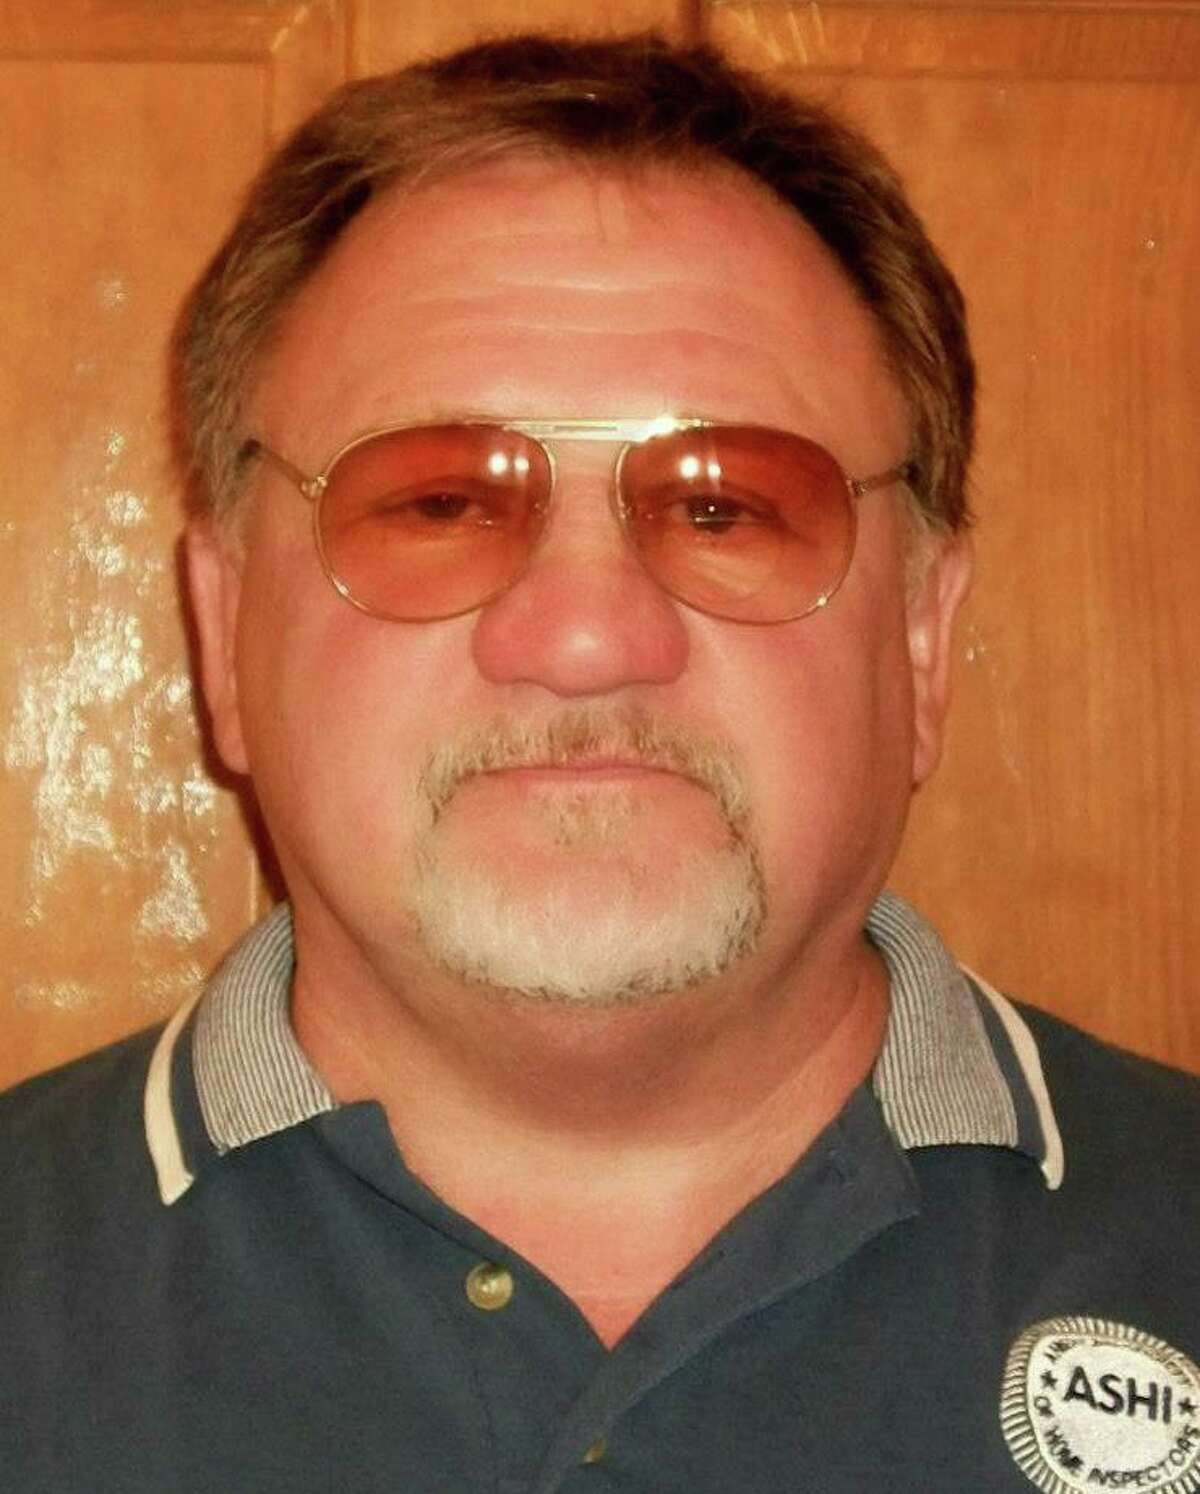 A government official says the suspect in the Virginia shooting that injured Rep. Steve Scalise and several others has been identified as an Illinois man named James. T. Hodgkinson. President Donald Trump has said Hodgkinson is now dead.